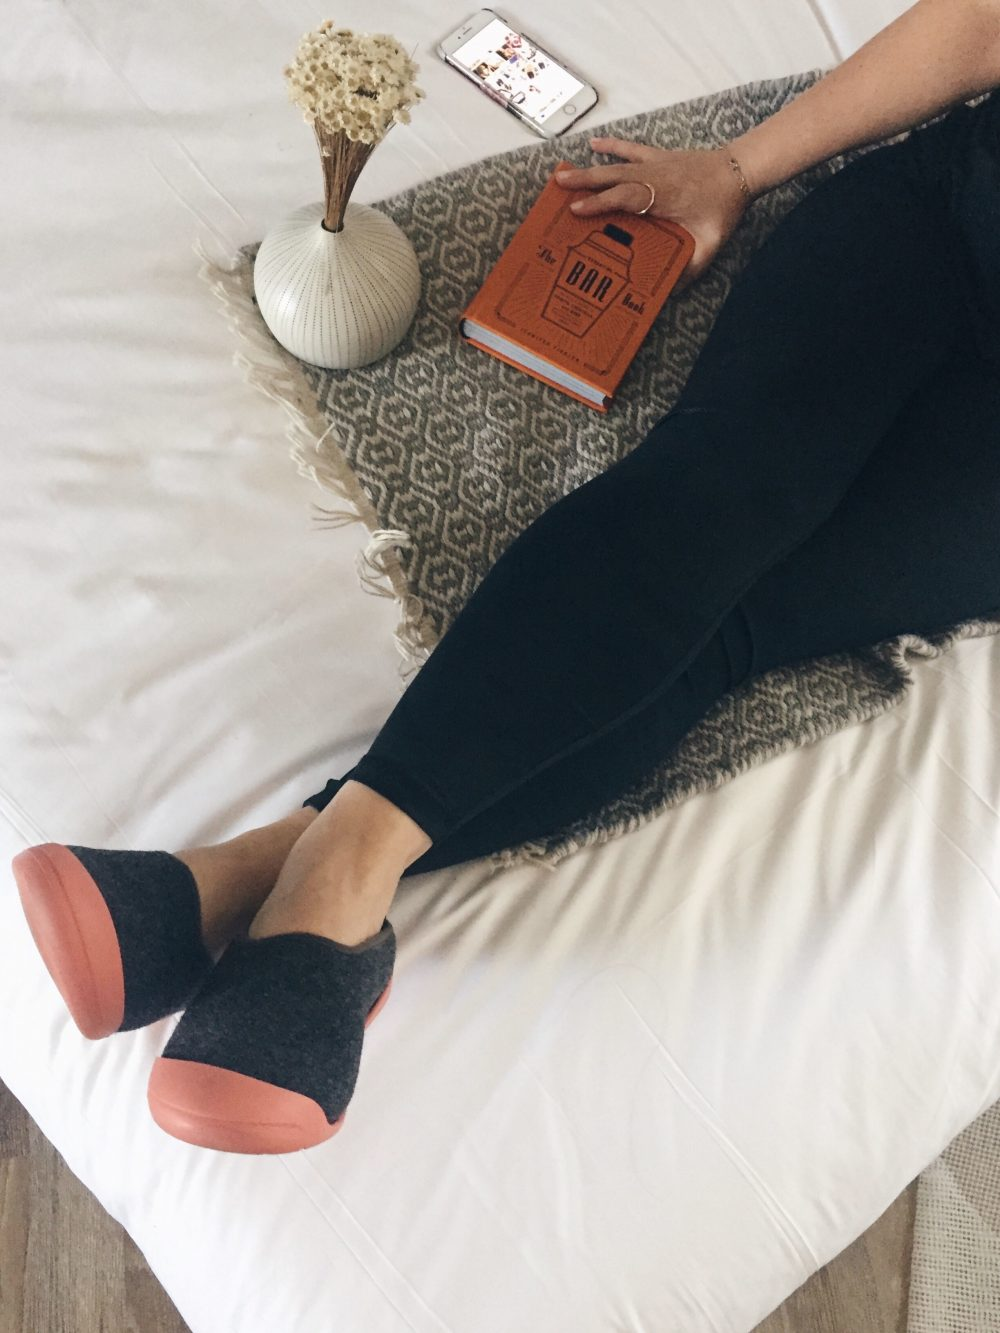 LOS ANGELES blogger lounging around in Mahabis slippers